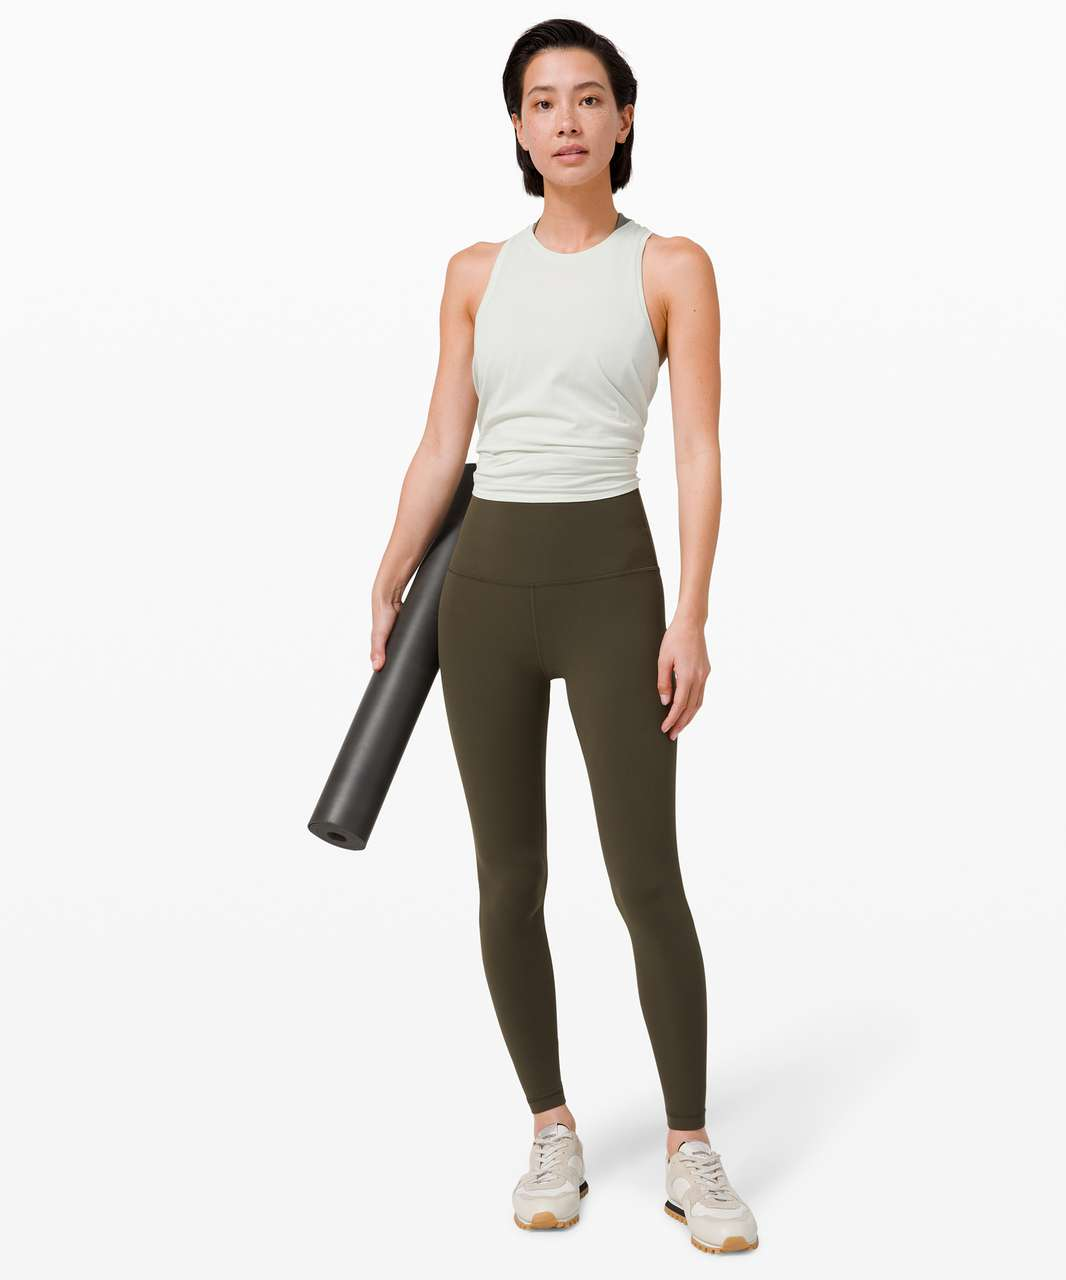 "Lululemon Align Super-High Rise Pant 28"" - Dark Olive (Second Release)"